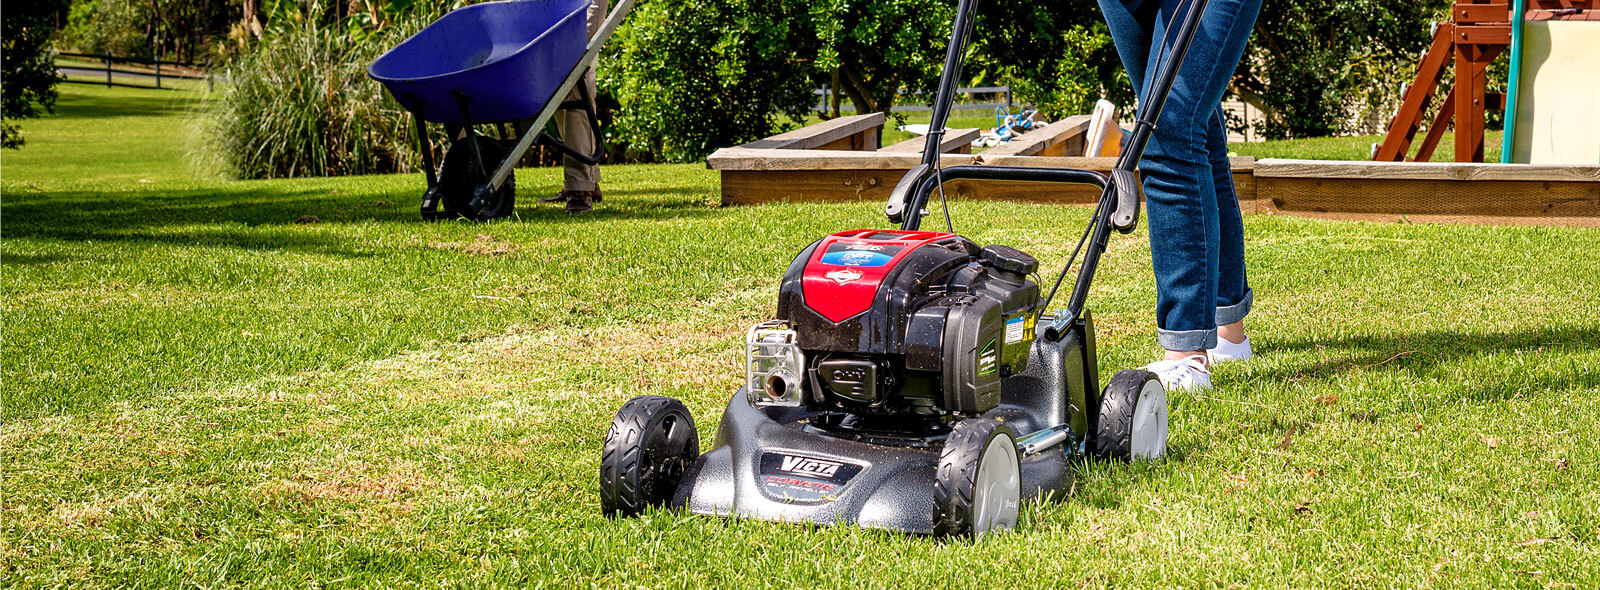 Victa Lawn Mower Buying Guide